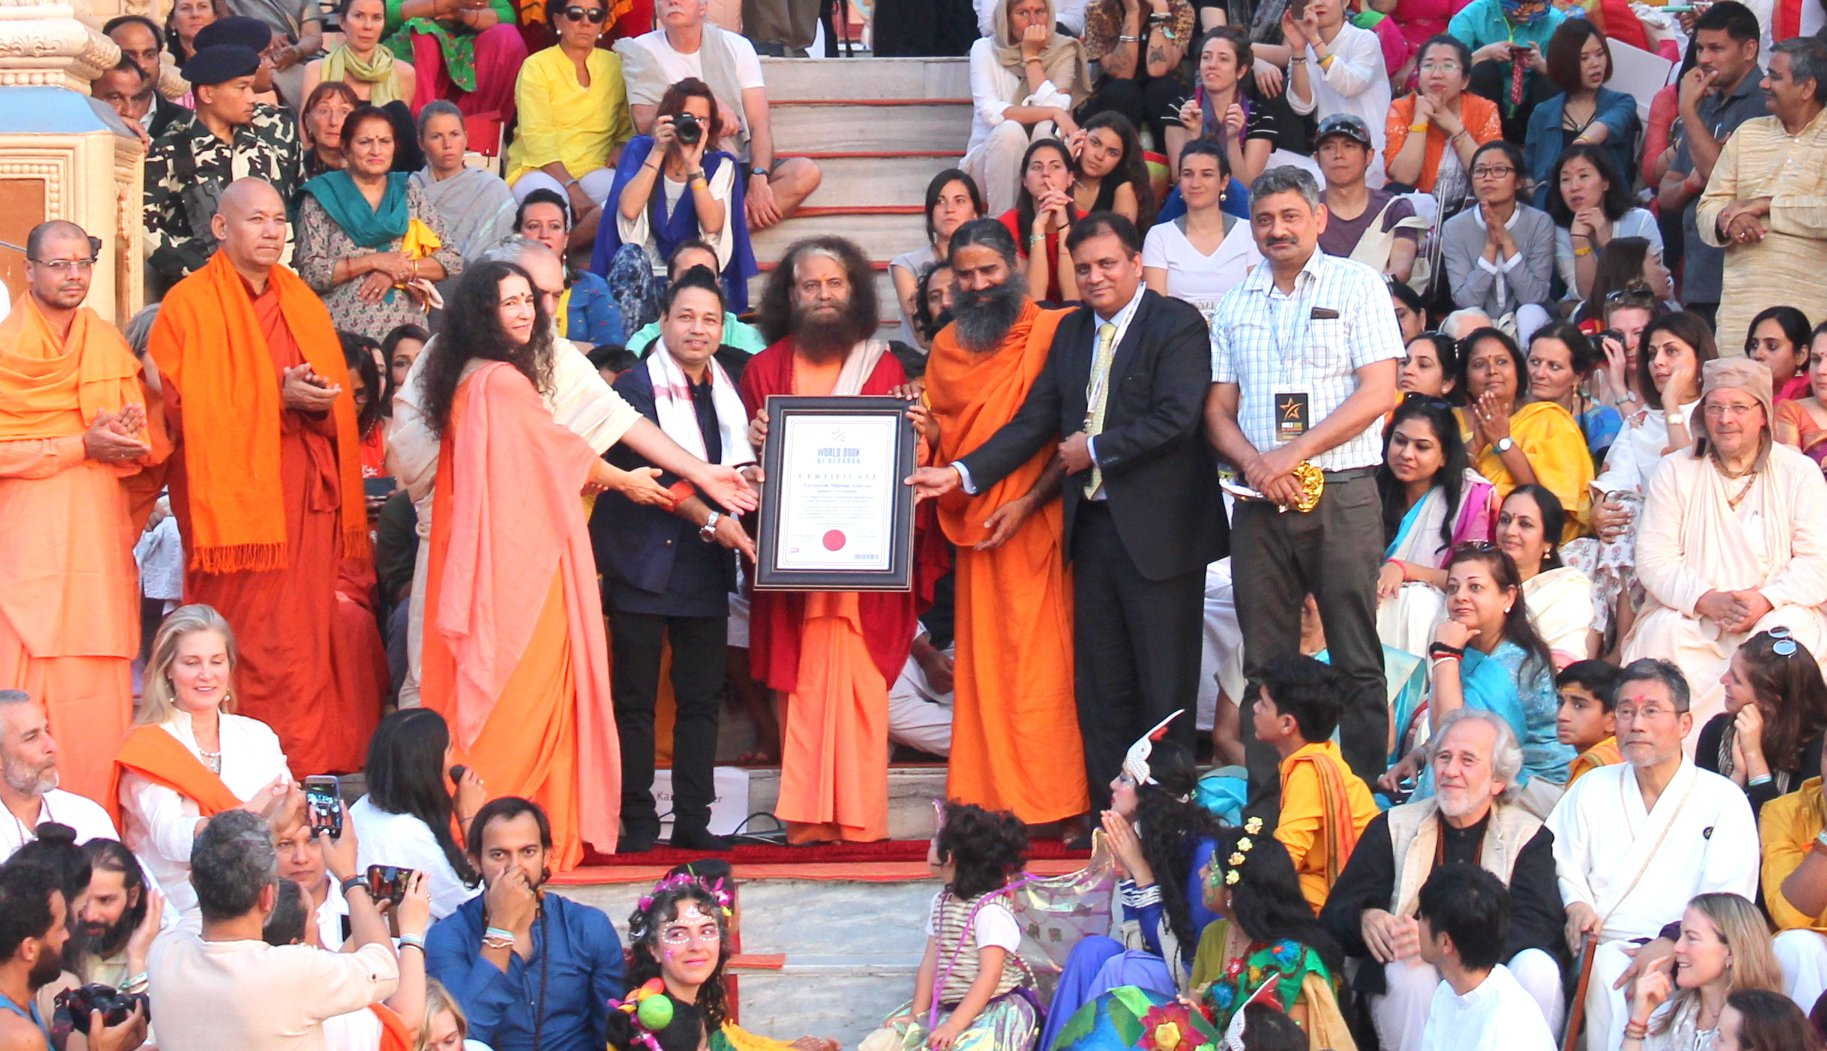 H.H. Pujya Swami Chidanand Saraswatiji and Sadhvi Bhagawati Saraswatiji bestow with certificate of World Record